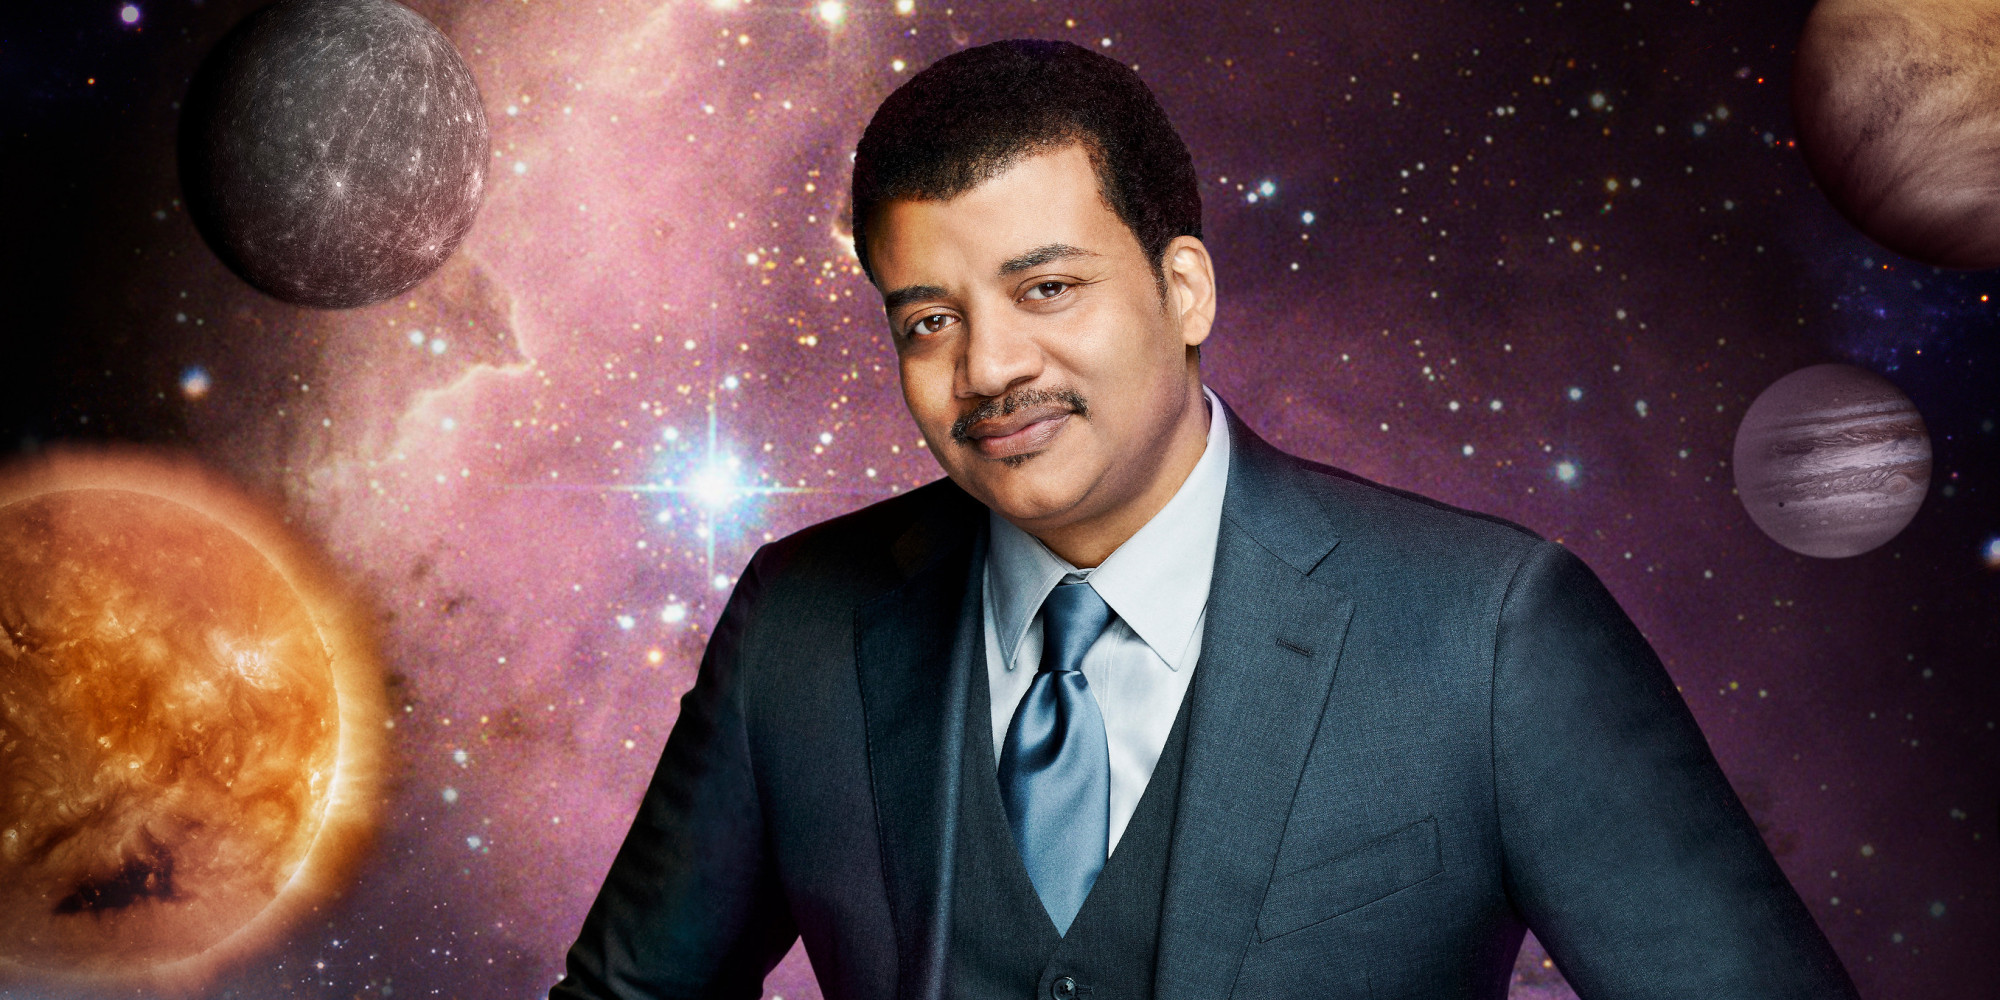 Astrophysicist Neil deGrasse Tyson to Host Talk Show on NatGeo Channel